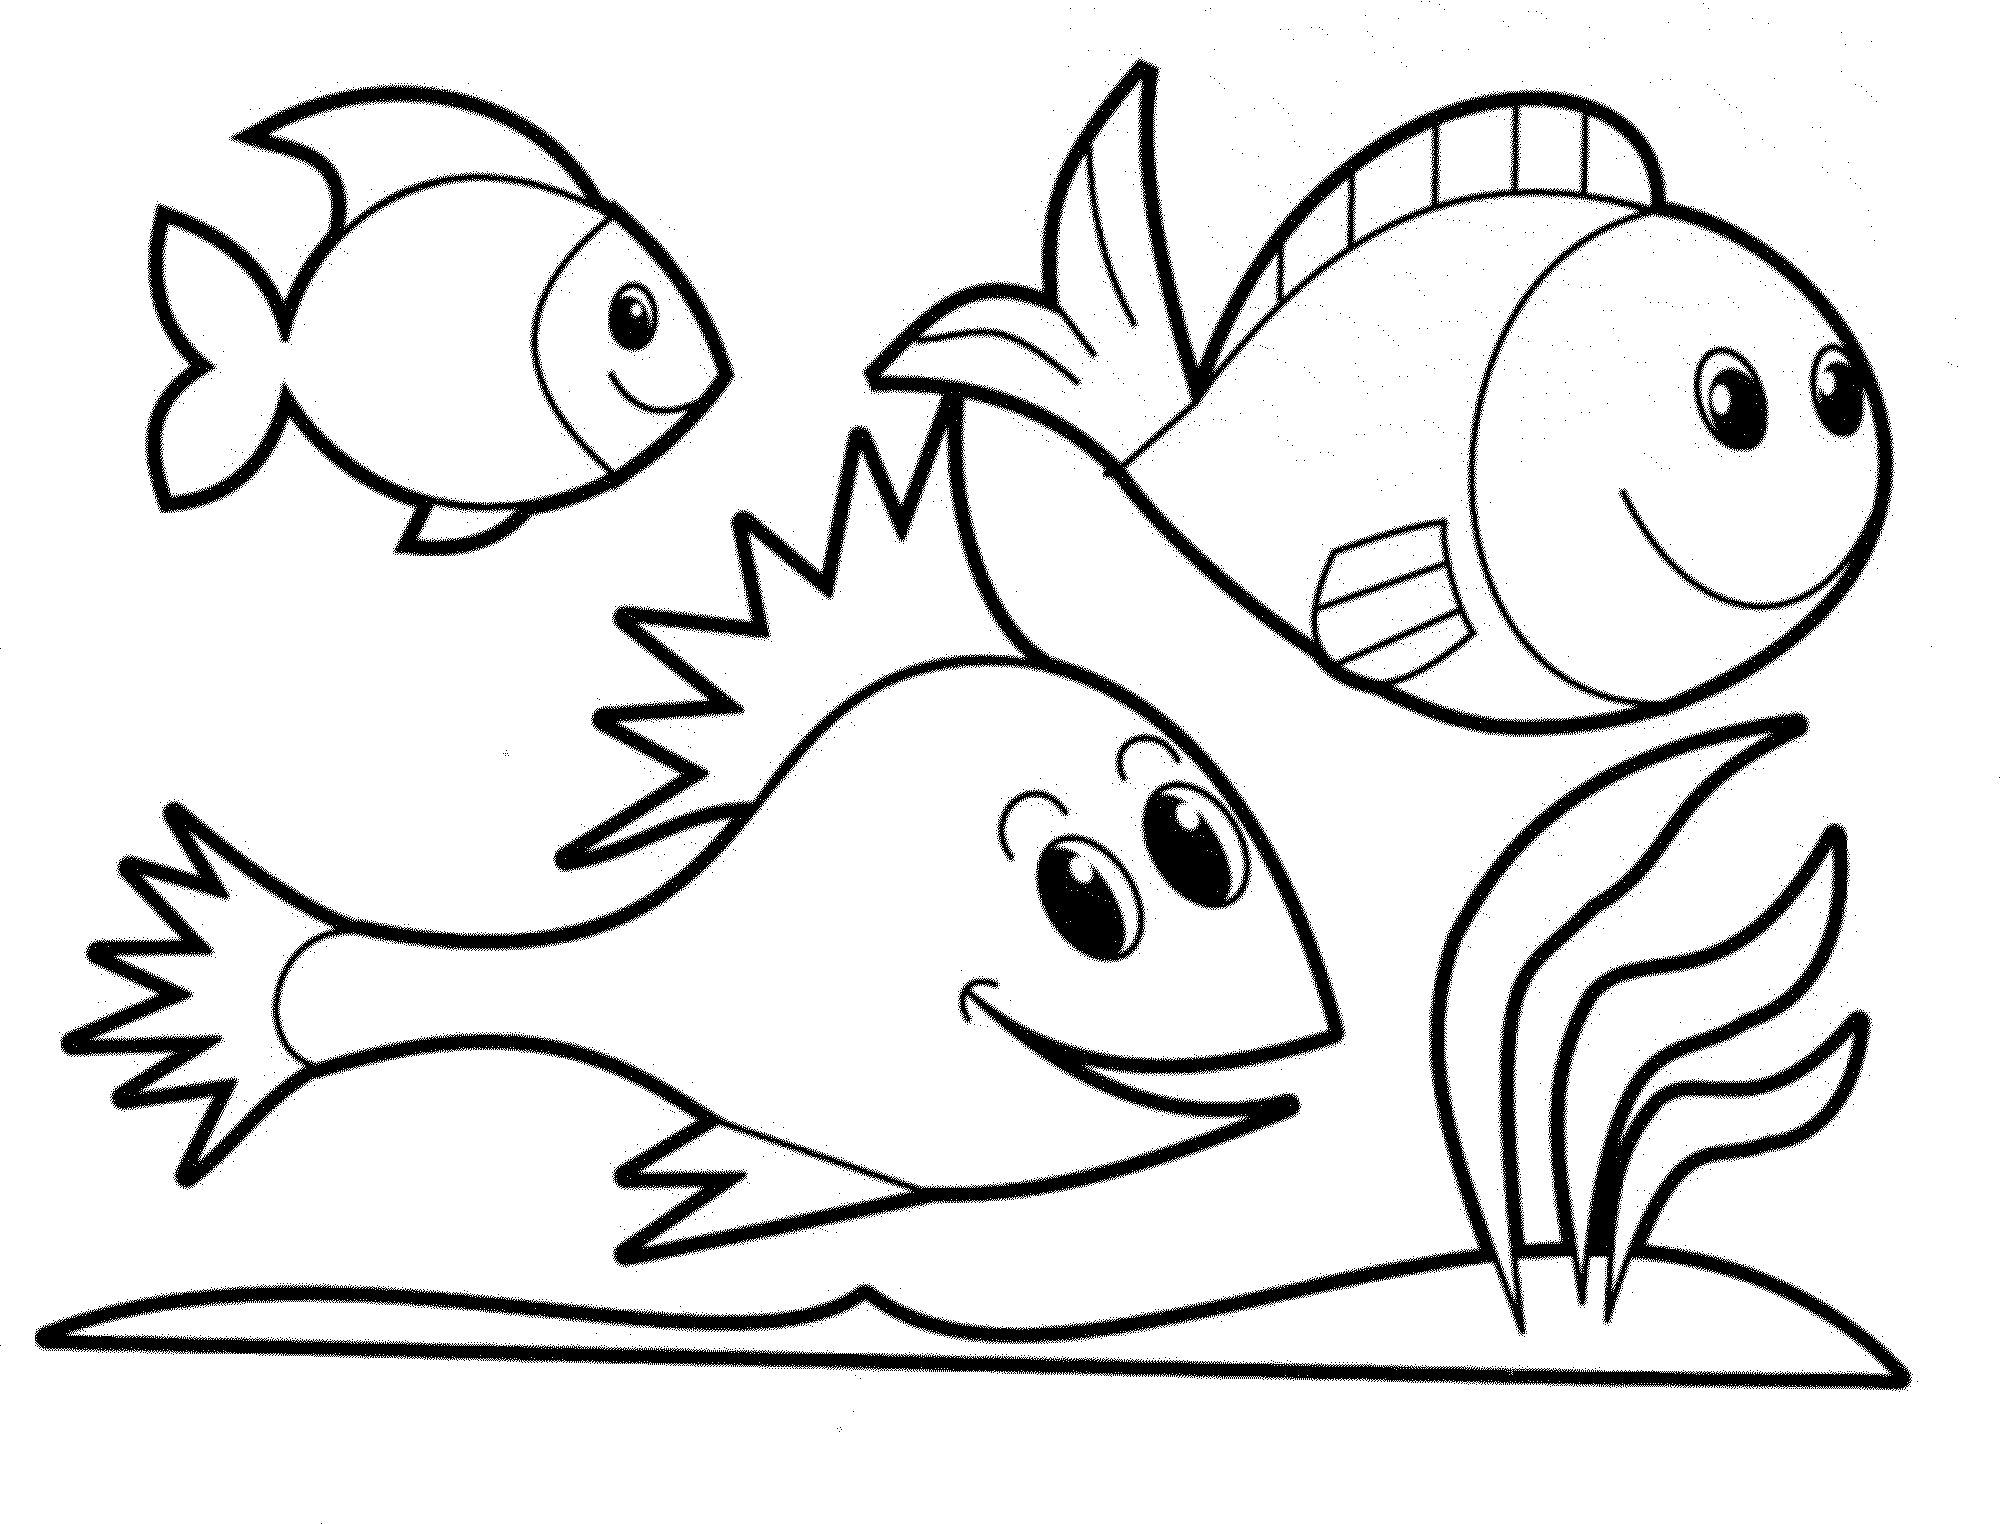 Coloring Pages For Kids Boys | Free download on ClipArtMag